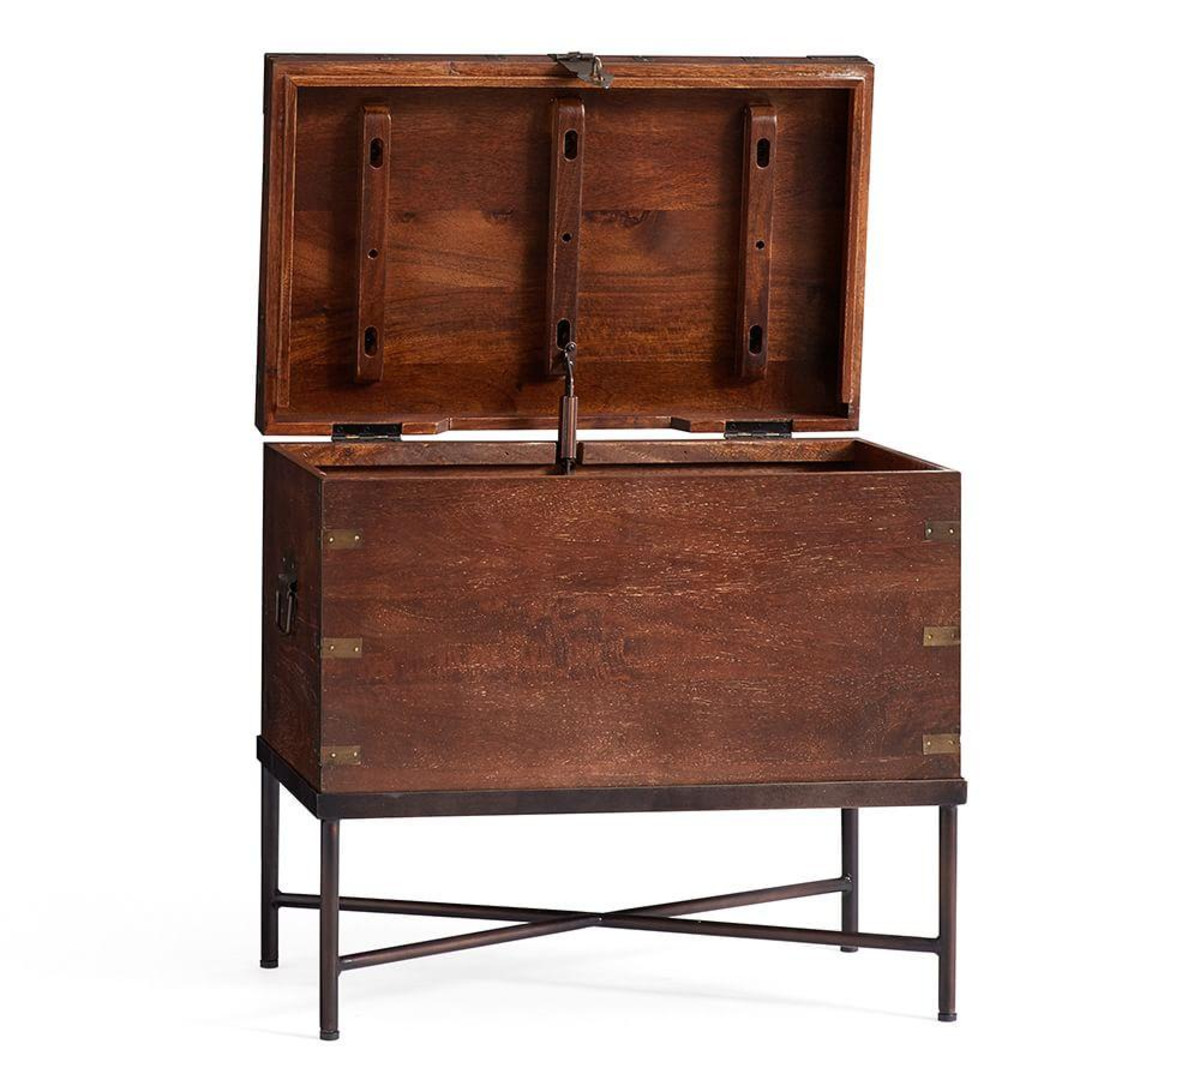 timor wood trunk accent table pottery barn media west elm coffee desk ikea accessories oriental lamp shade christmas tablecloth and runner contemporary home decor black oak door